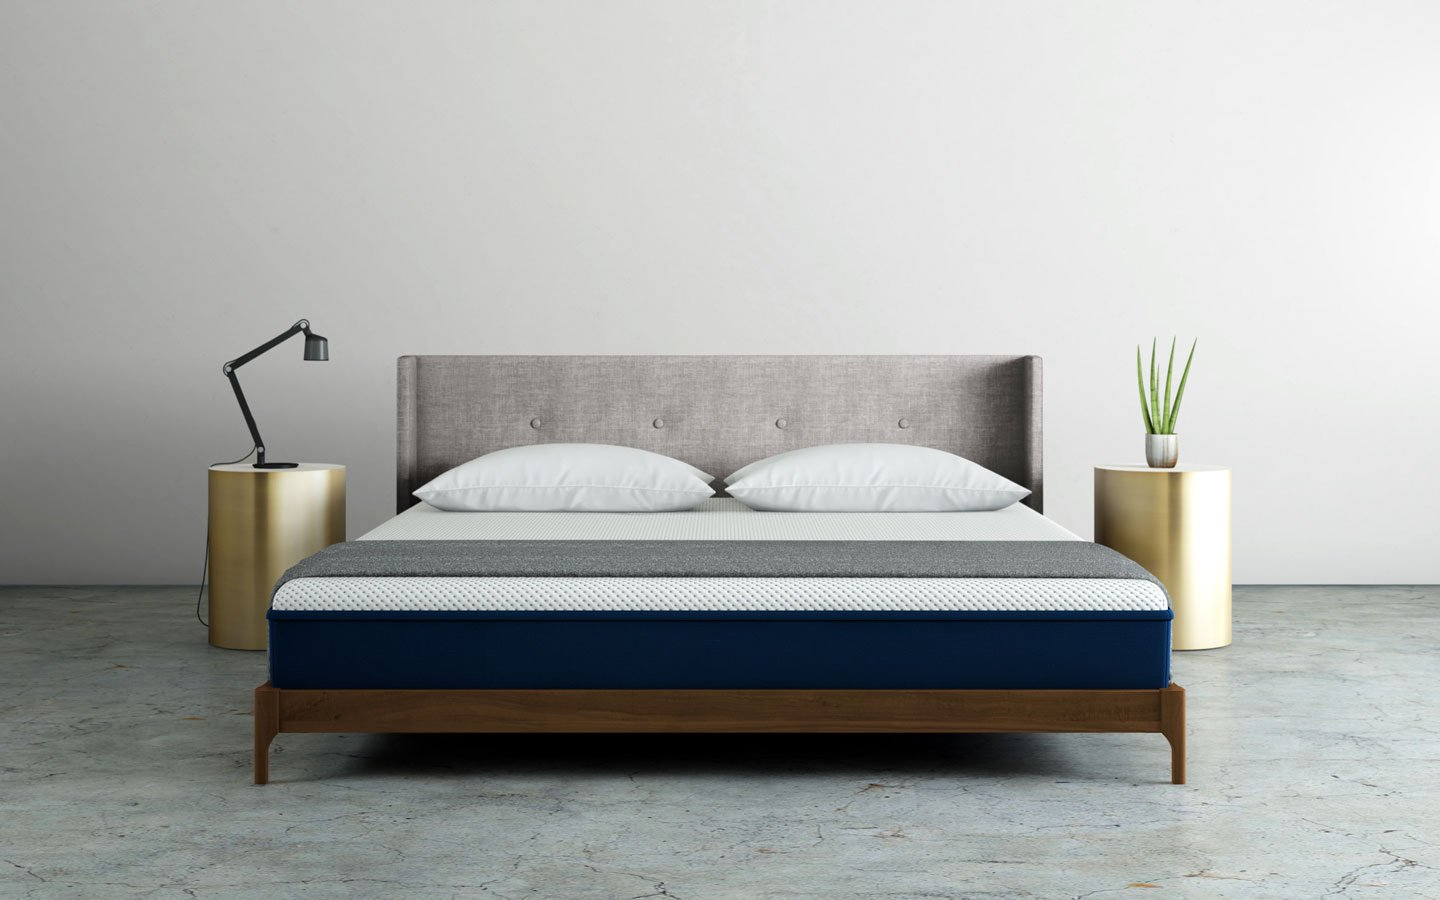 Amerisleep AS1 Orthopedic Mattress Review by www.snoremagazine.com